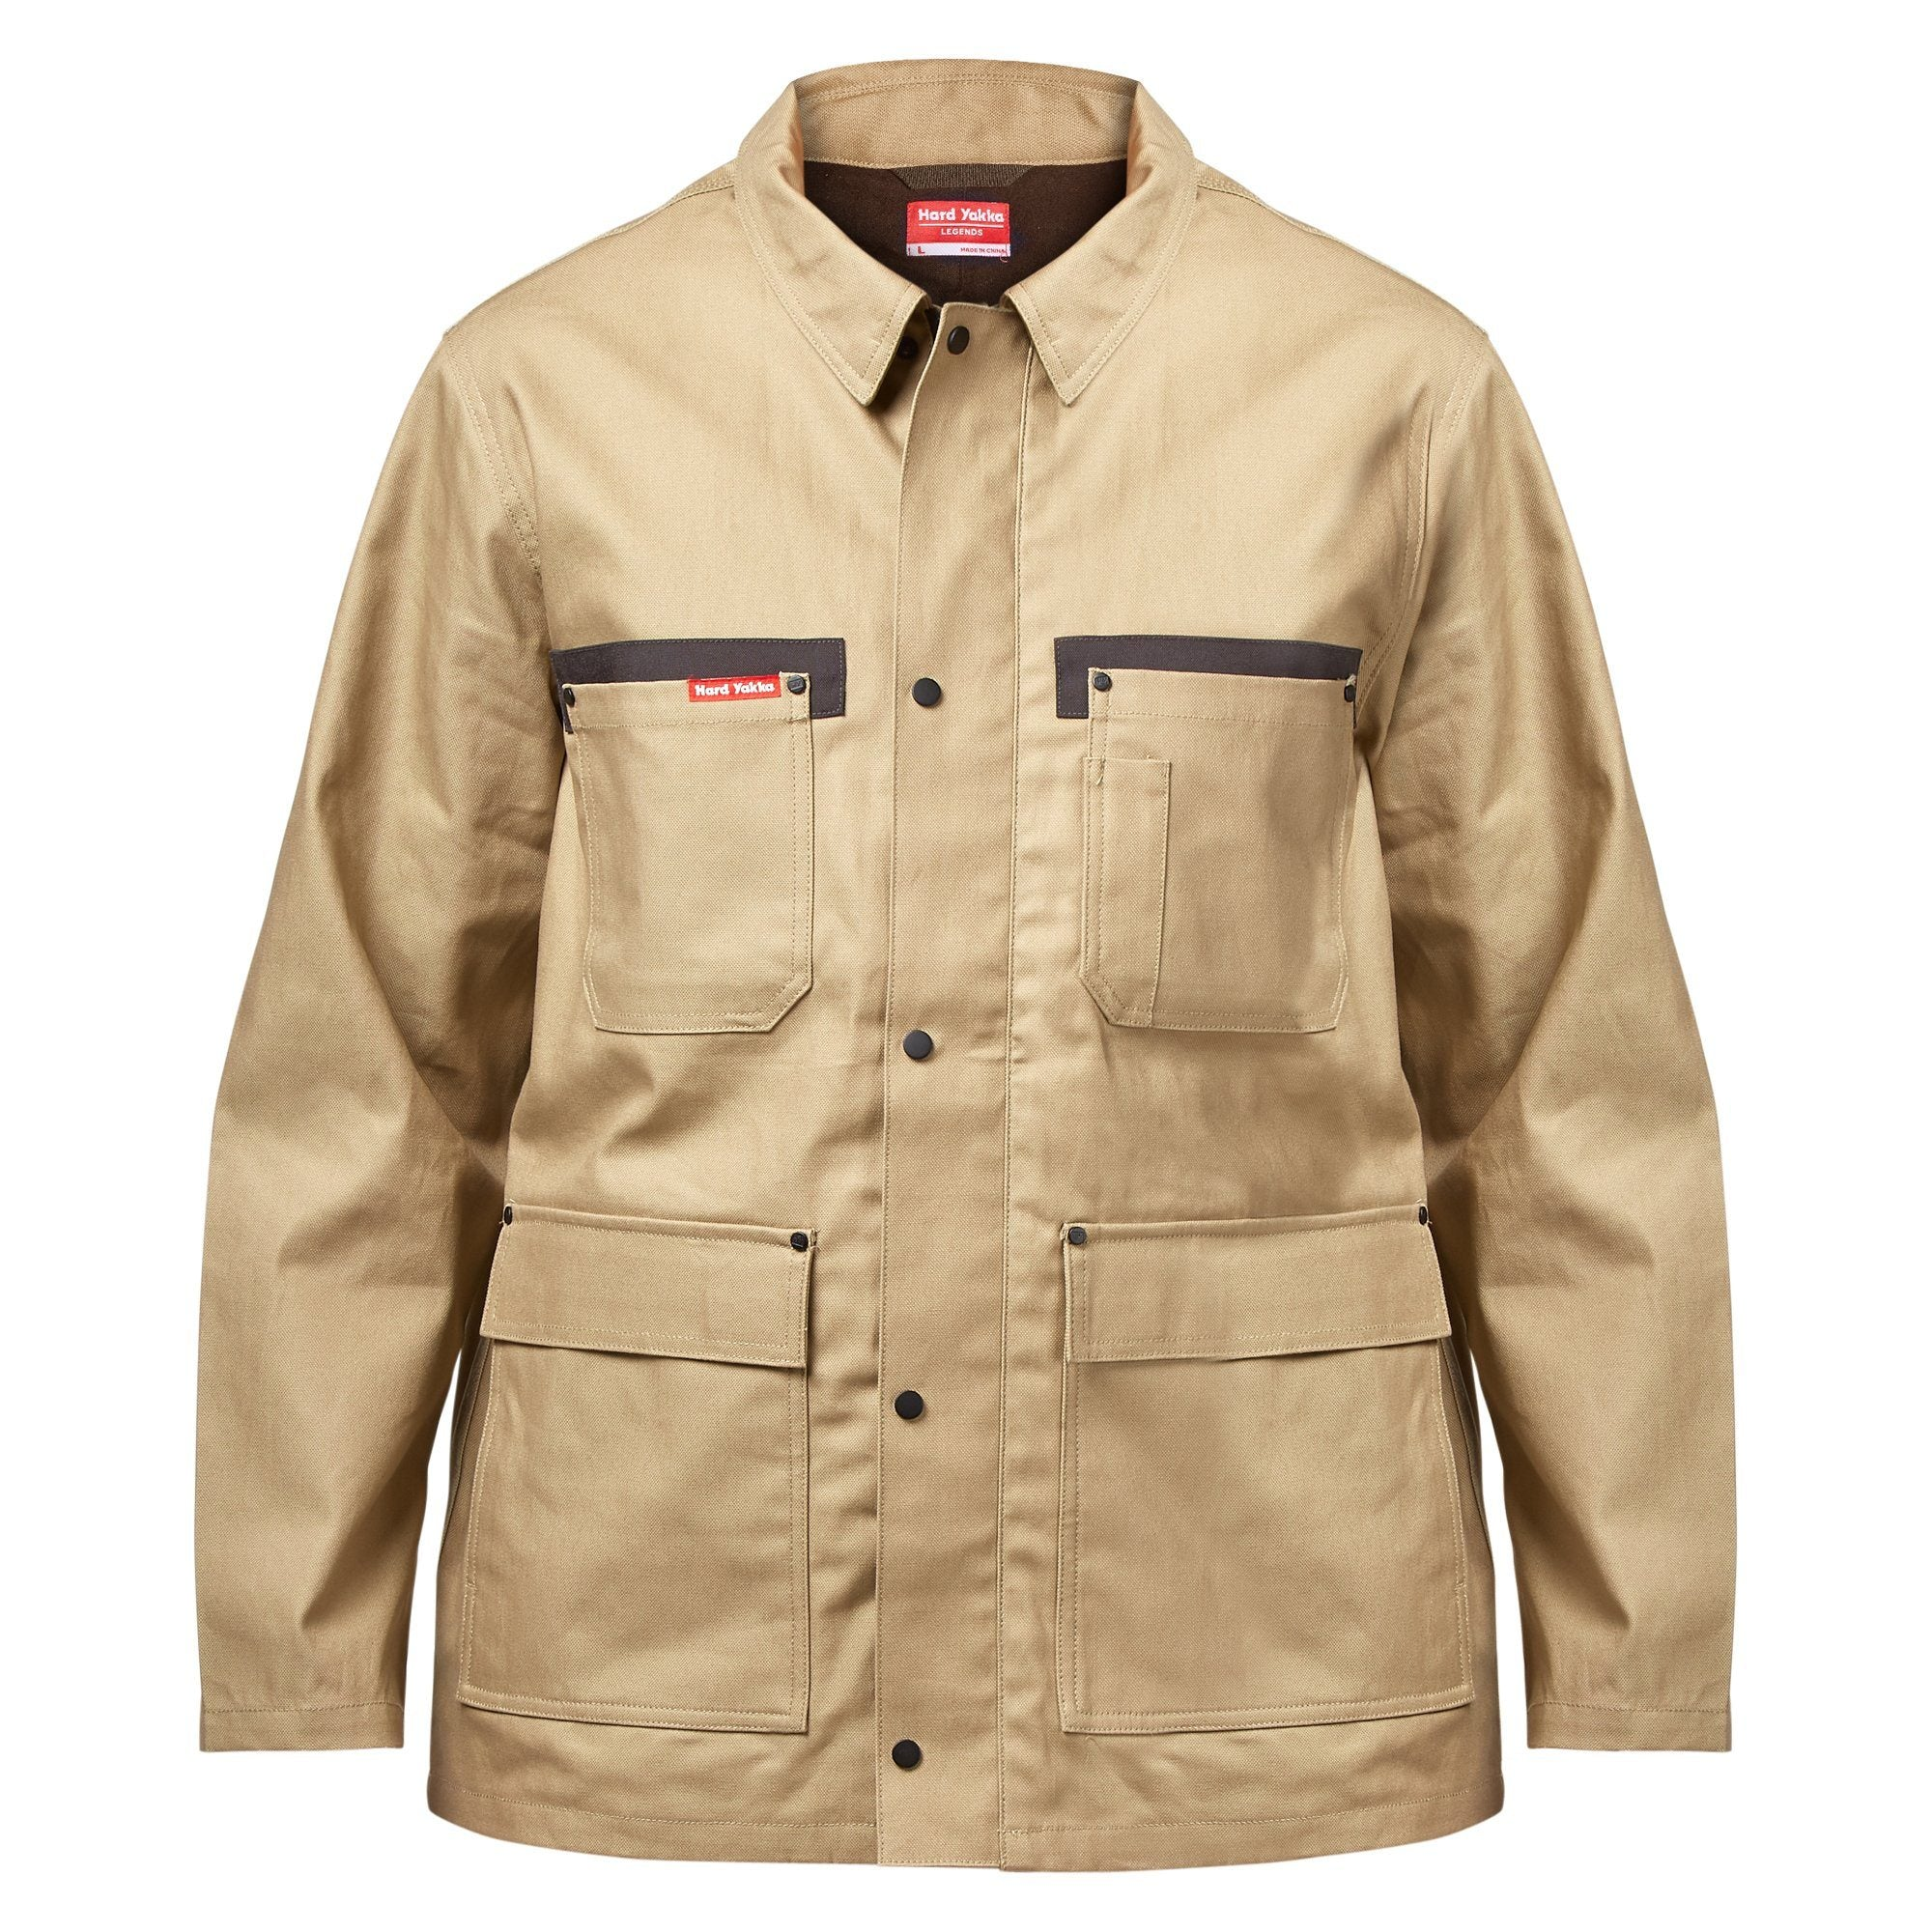 Hard Yakka Legends Jacket - Khaki Workwear Isbister & Co Wholesale